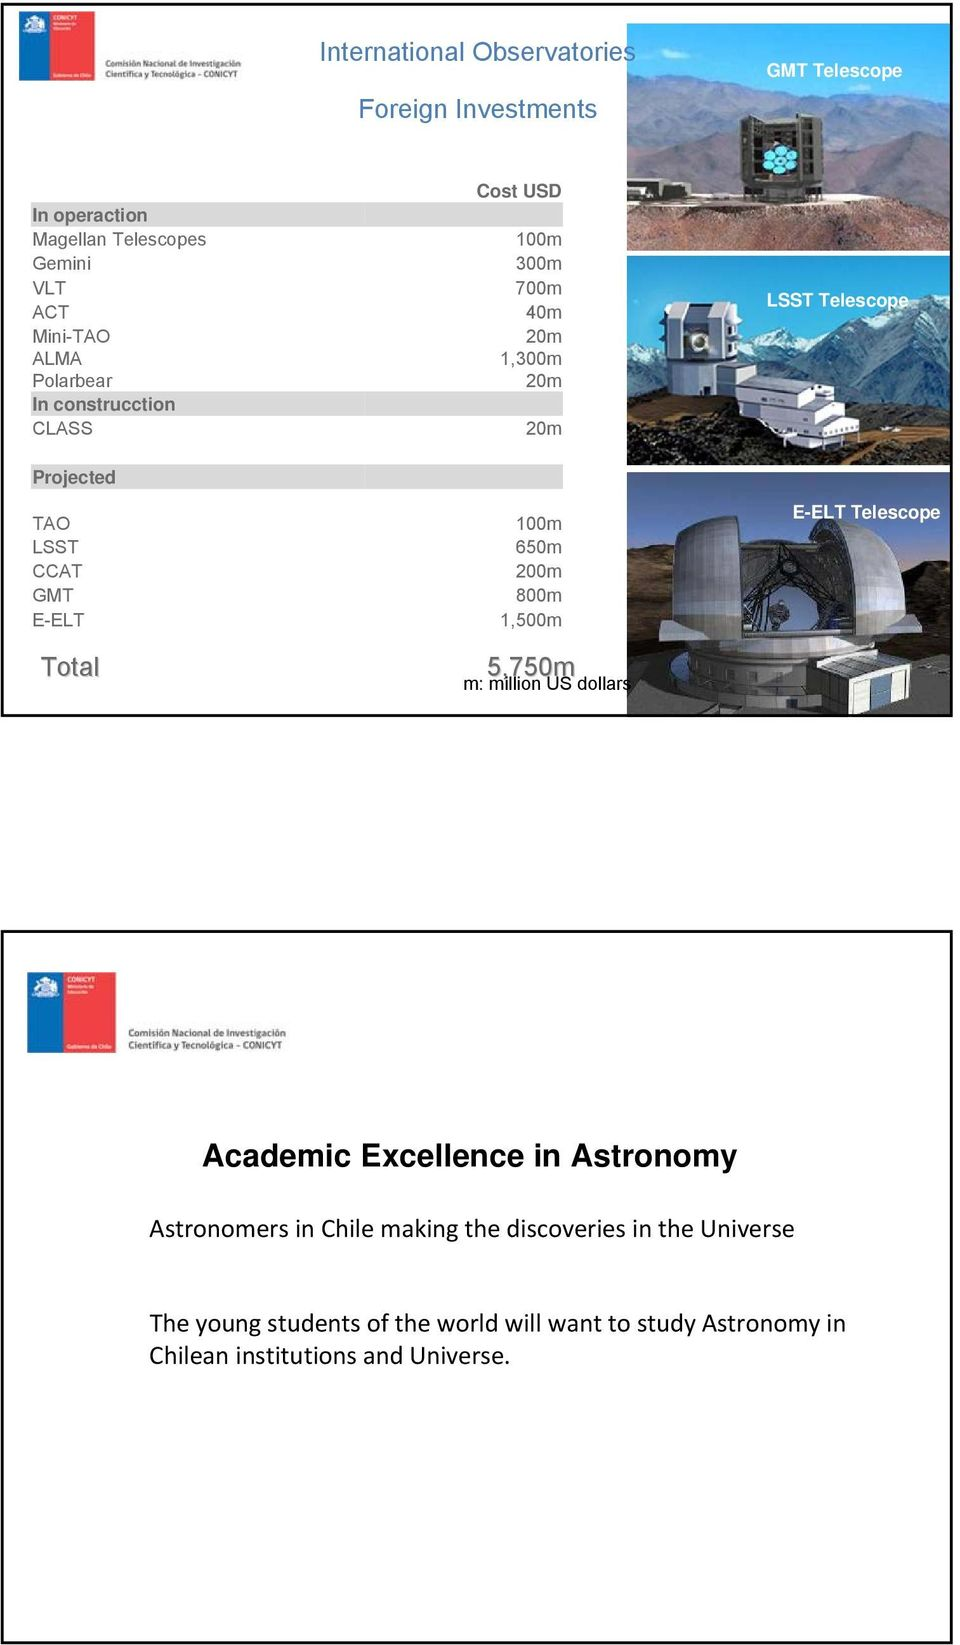 200m GMT 800m E-ELT 1,500m E-ELT Telescope Total 5,750m m: million US dollars Academic Excellence in Astronomy Astronomers in